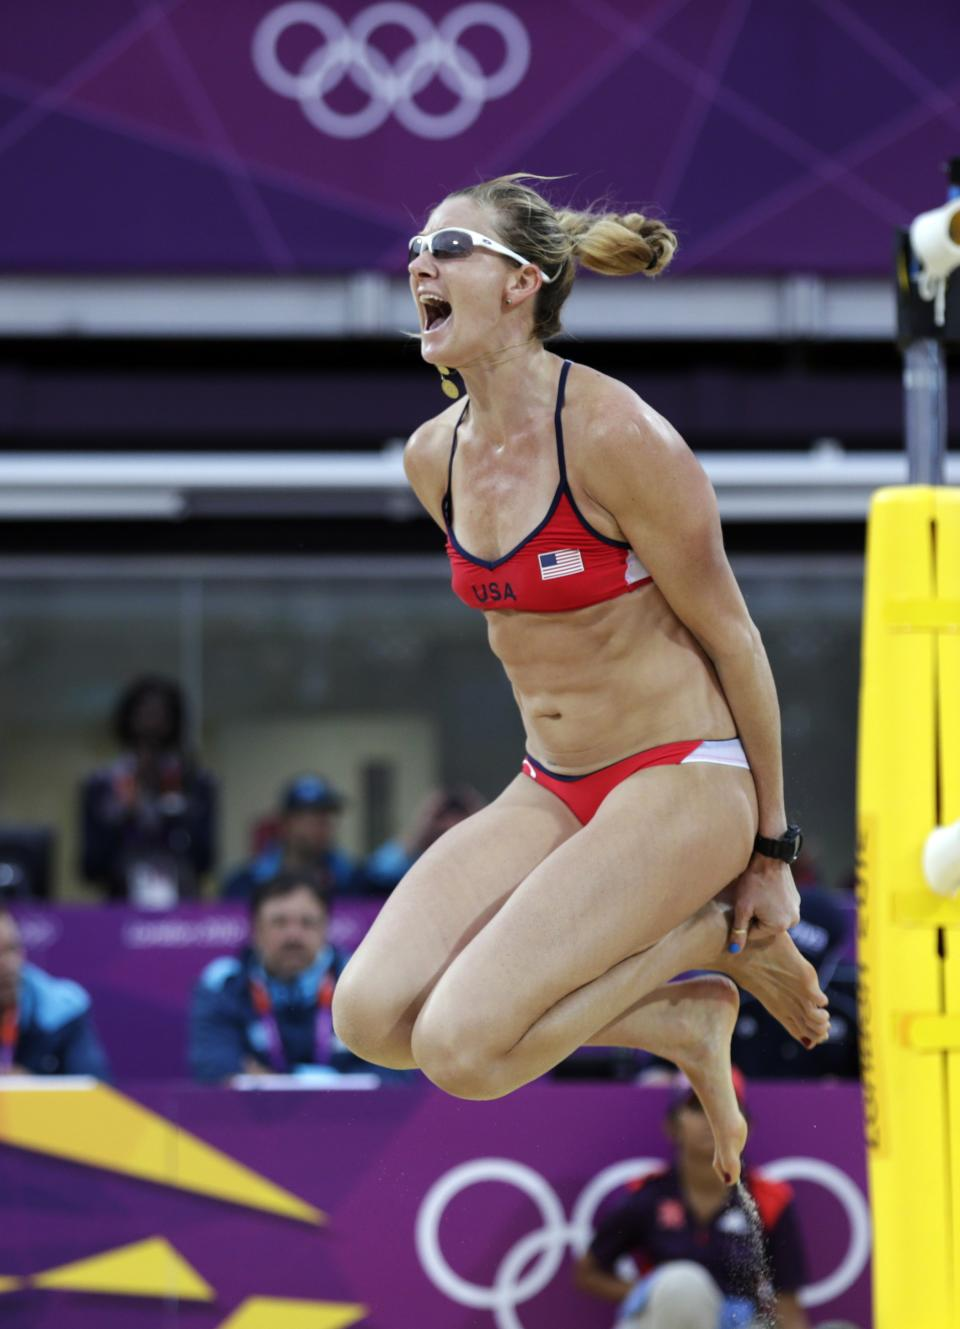 Kerri Walsh Jennings of the United States leaps in the air after beating China in two sets during a women's semi-final beach volleyball match at the 2012 Summer Olympics, Tuesday, Aug. 7, 2012, in London. (AP Photo/Dave Martin)